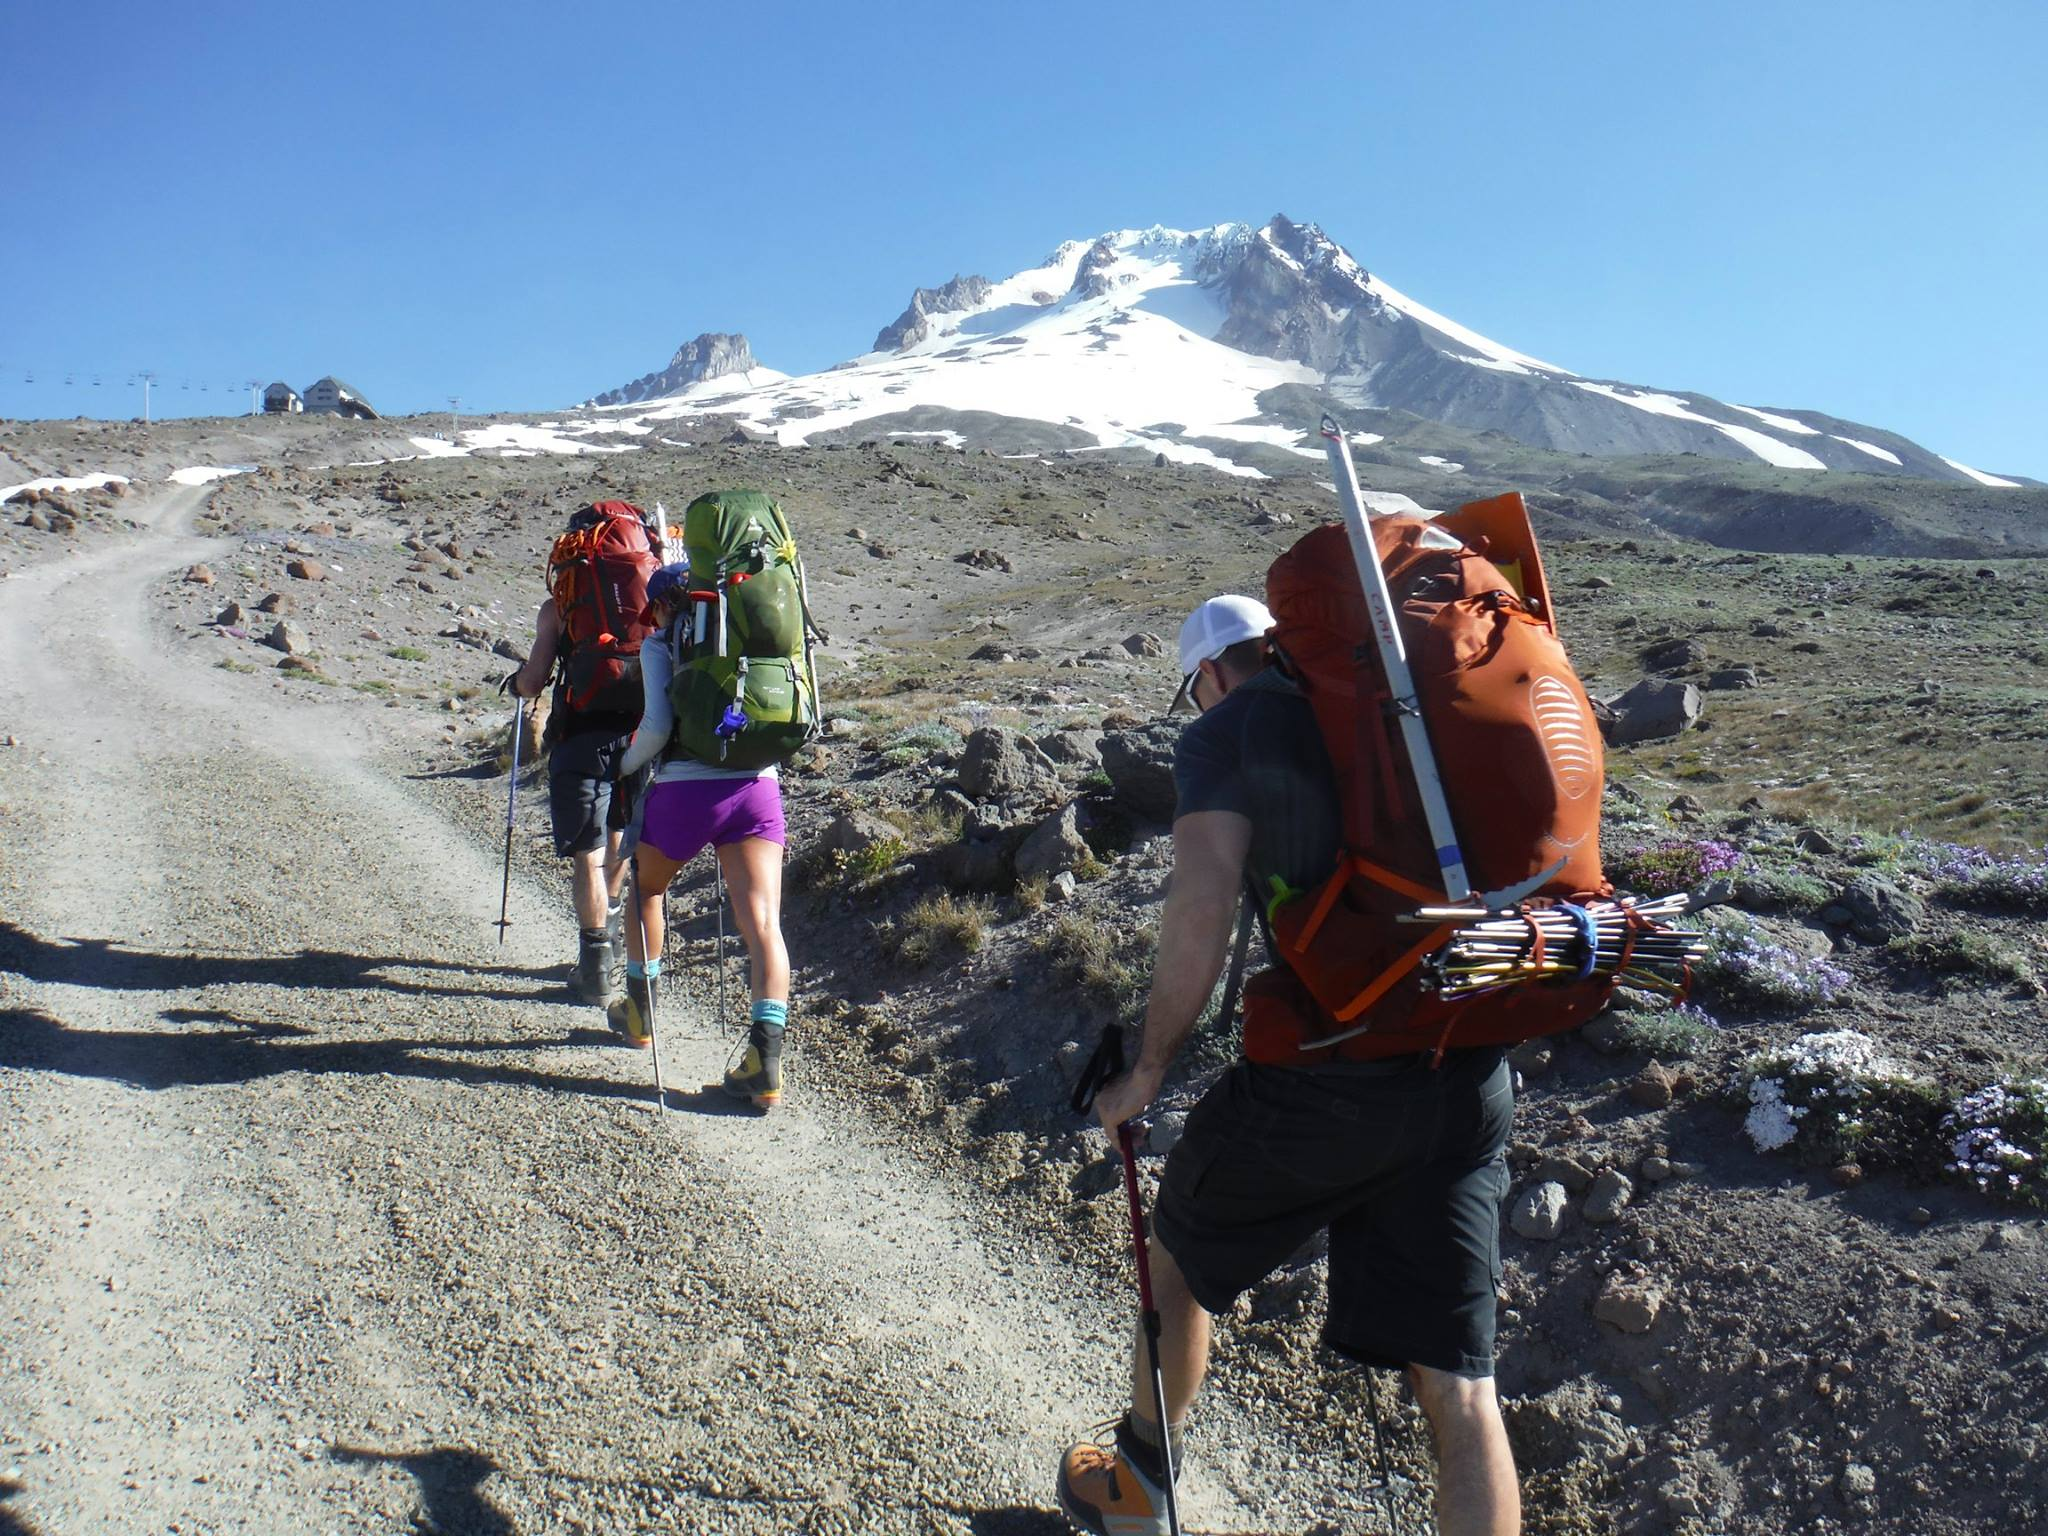 Mt Hood's approach revealed all